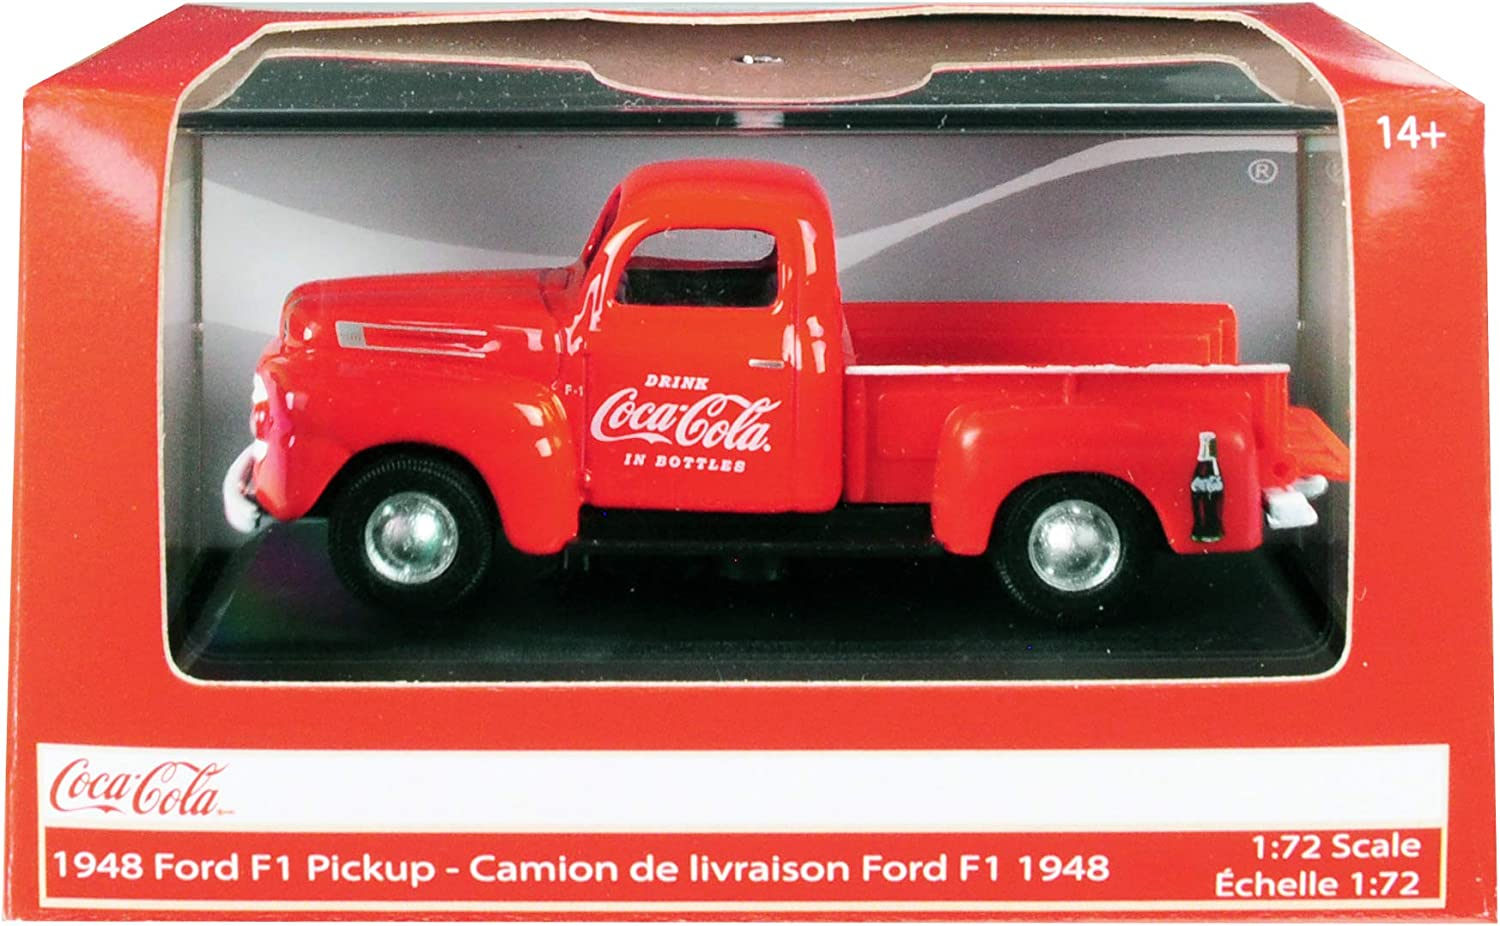 1948 Ford F1 Pickup Truck Coca-Cola Red 1/72 Diecast Model Car by Motorcity Classics 472001